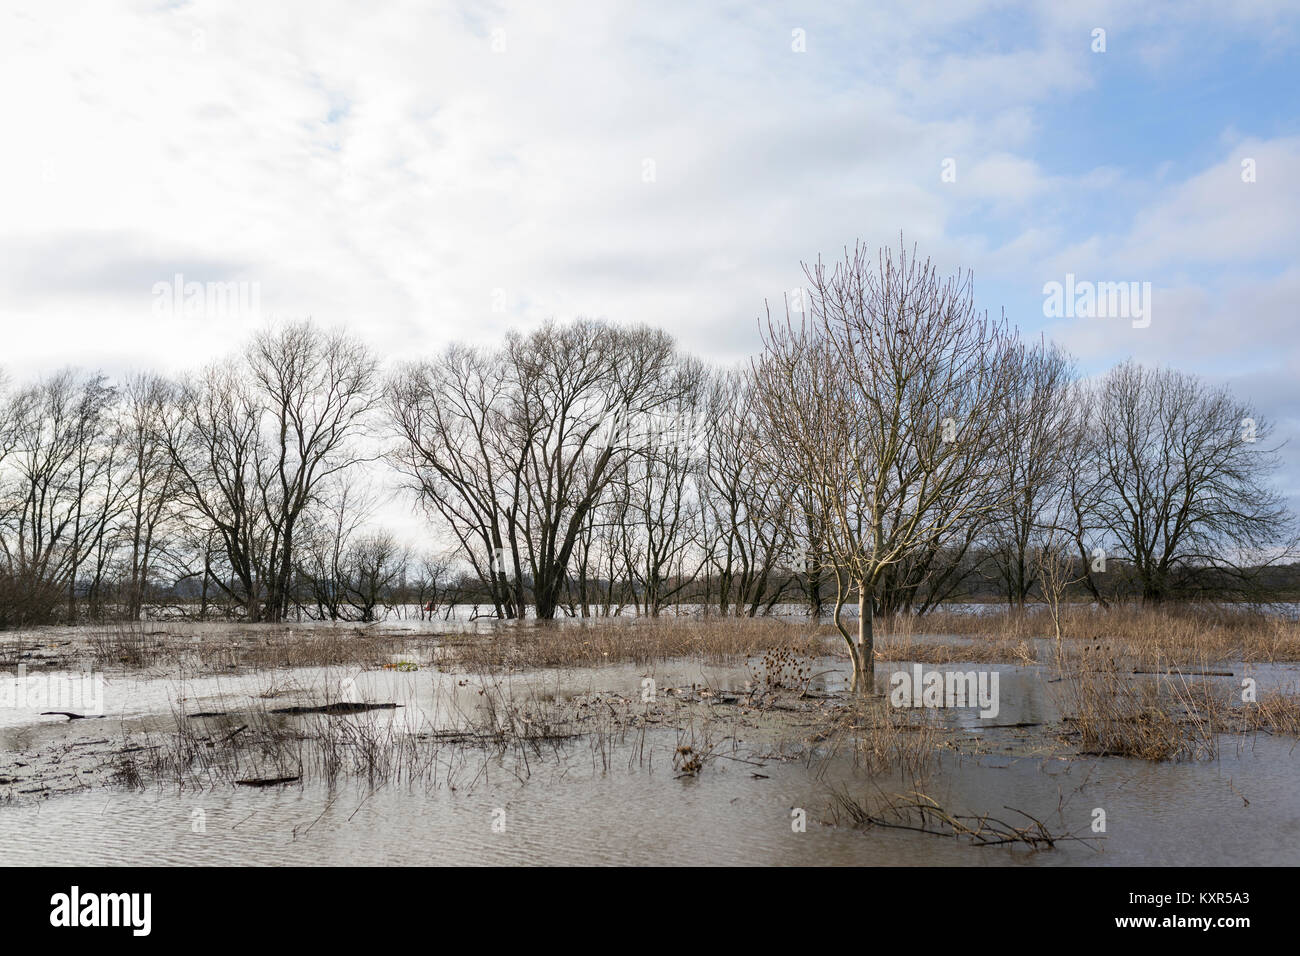 High water level at river Maas with flooded flood plains and drowned trees at Arcen, Netherlands Stock Photo